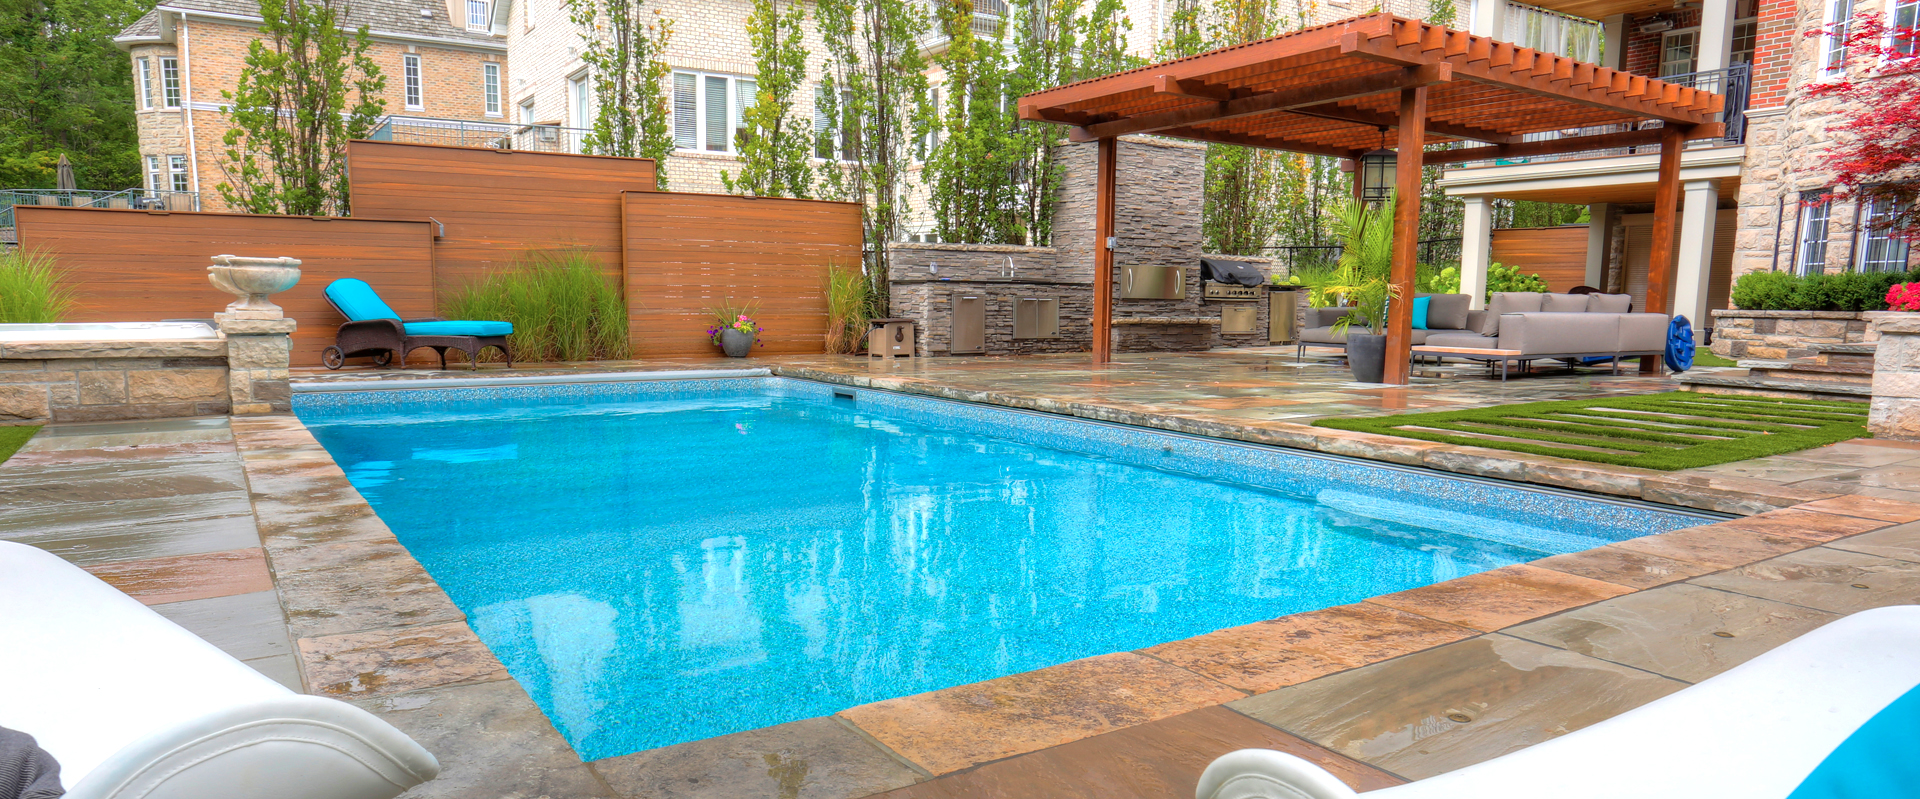 picking the best pool for your backyard